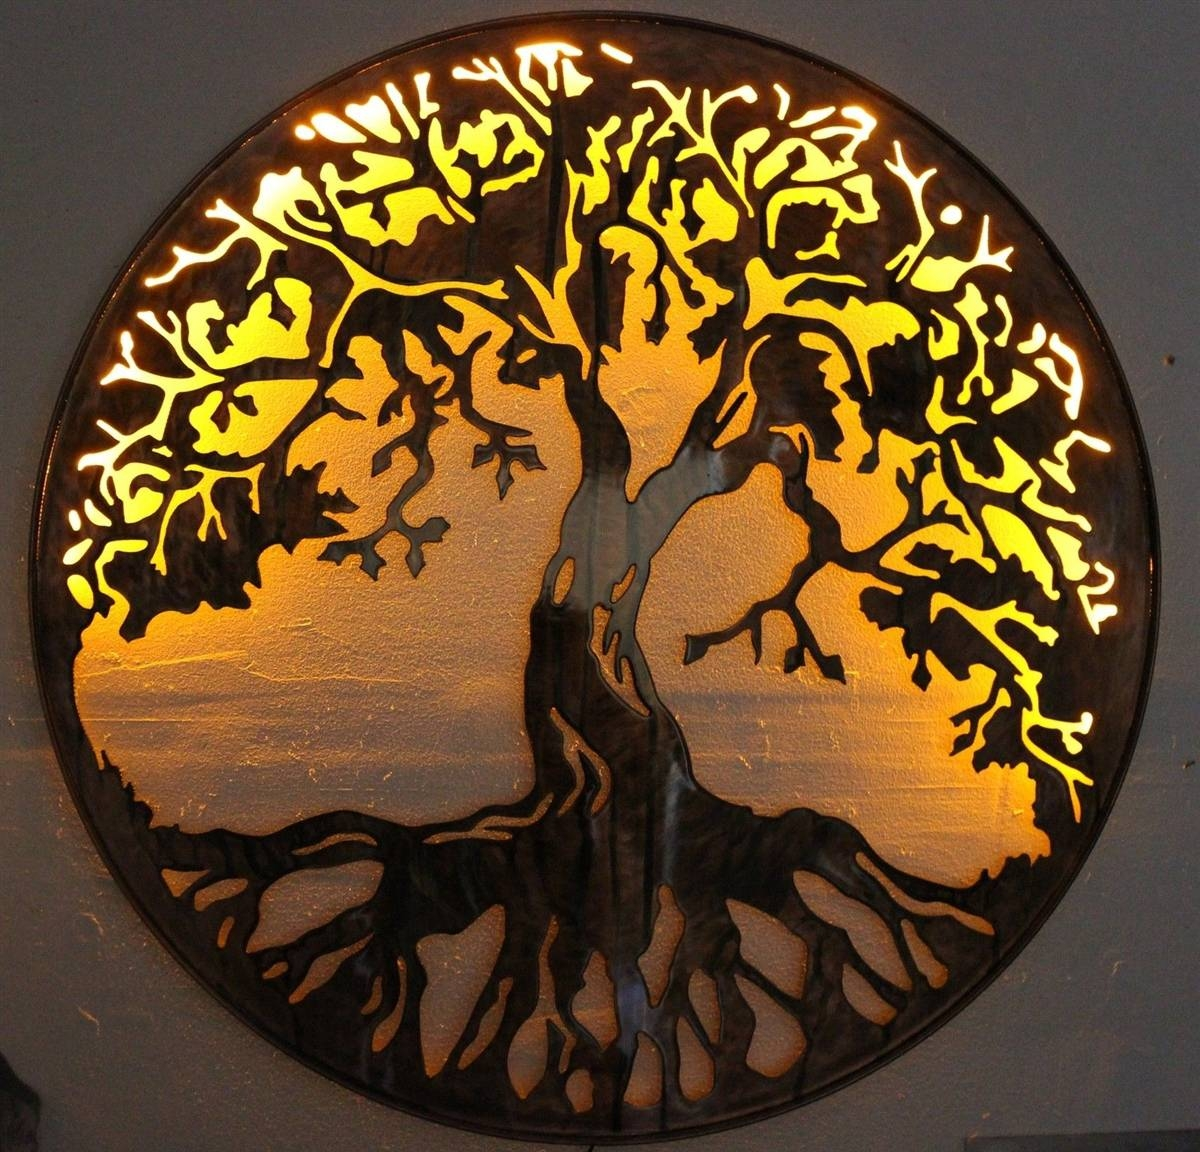 "Of Life Metal Wall Art 24"" With Led Lightshgmw With Regard To Recent Tree Of Life Metal Wall Art (View 3 of 20)"